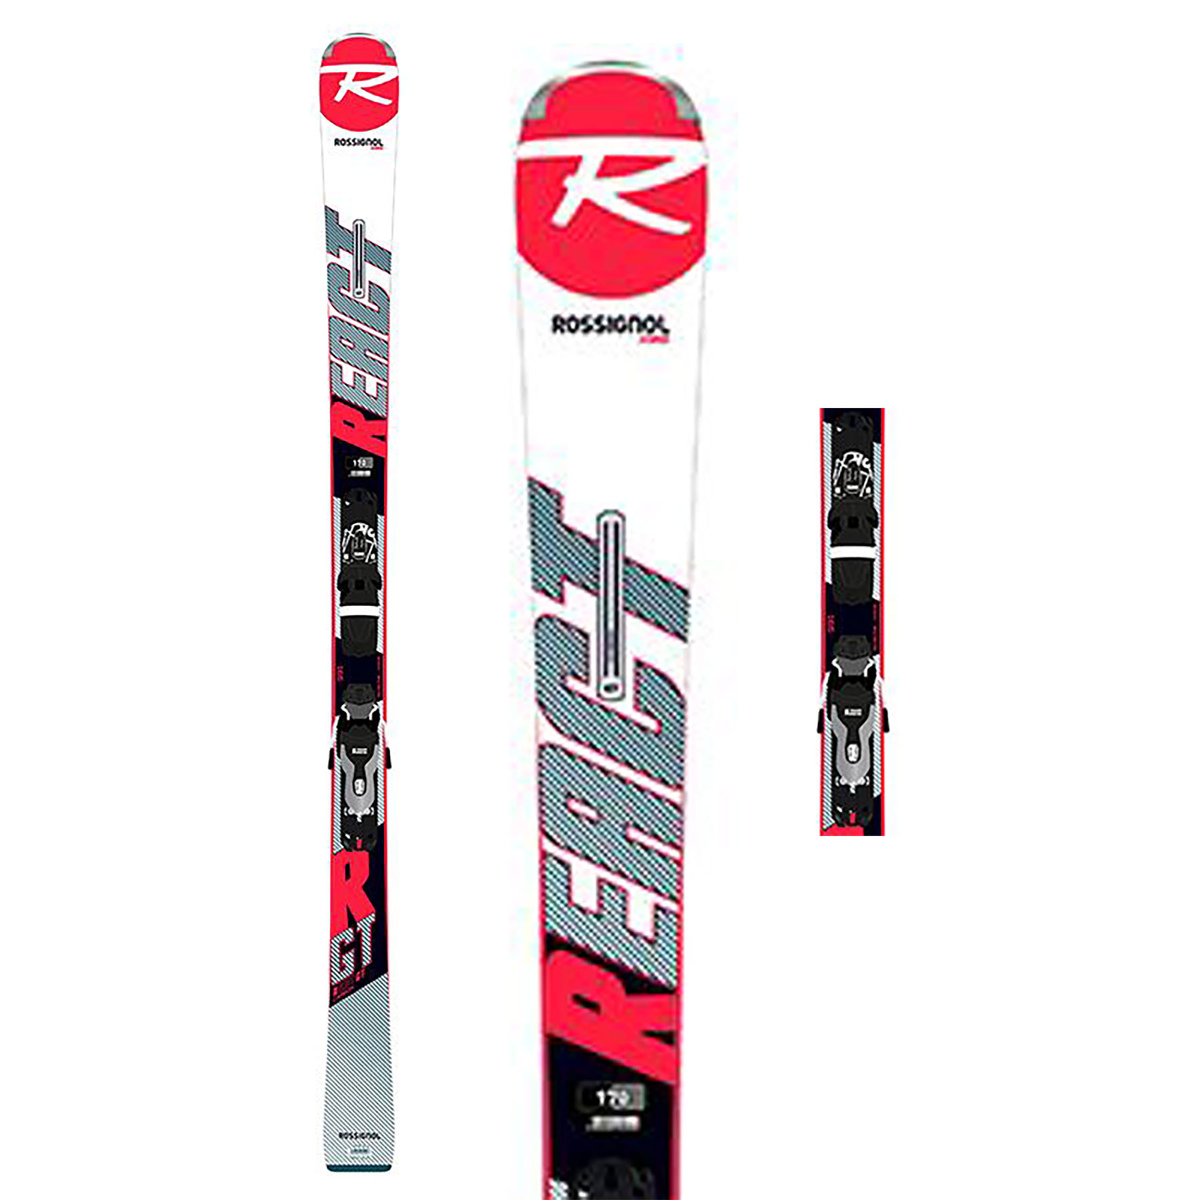 _PREMANUFACTURE_PRICE Rossignol REACT GT CON ATTACCO XPRESS 10